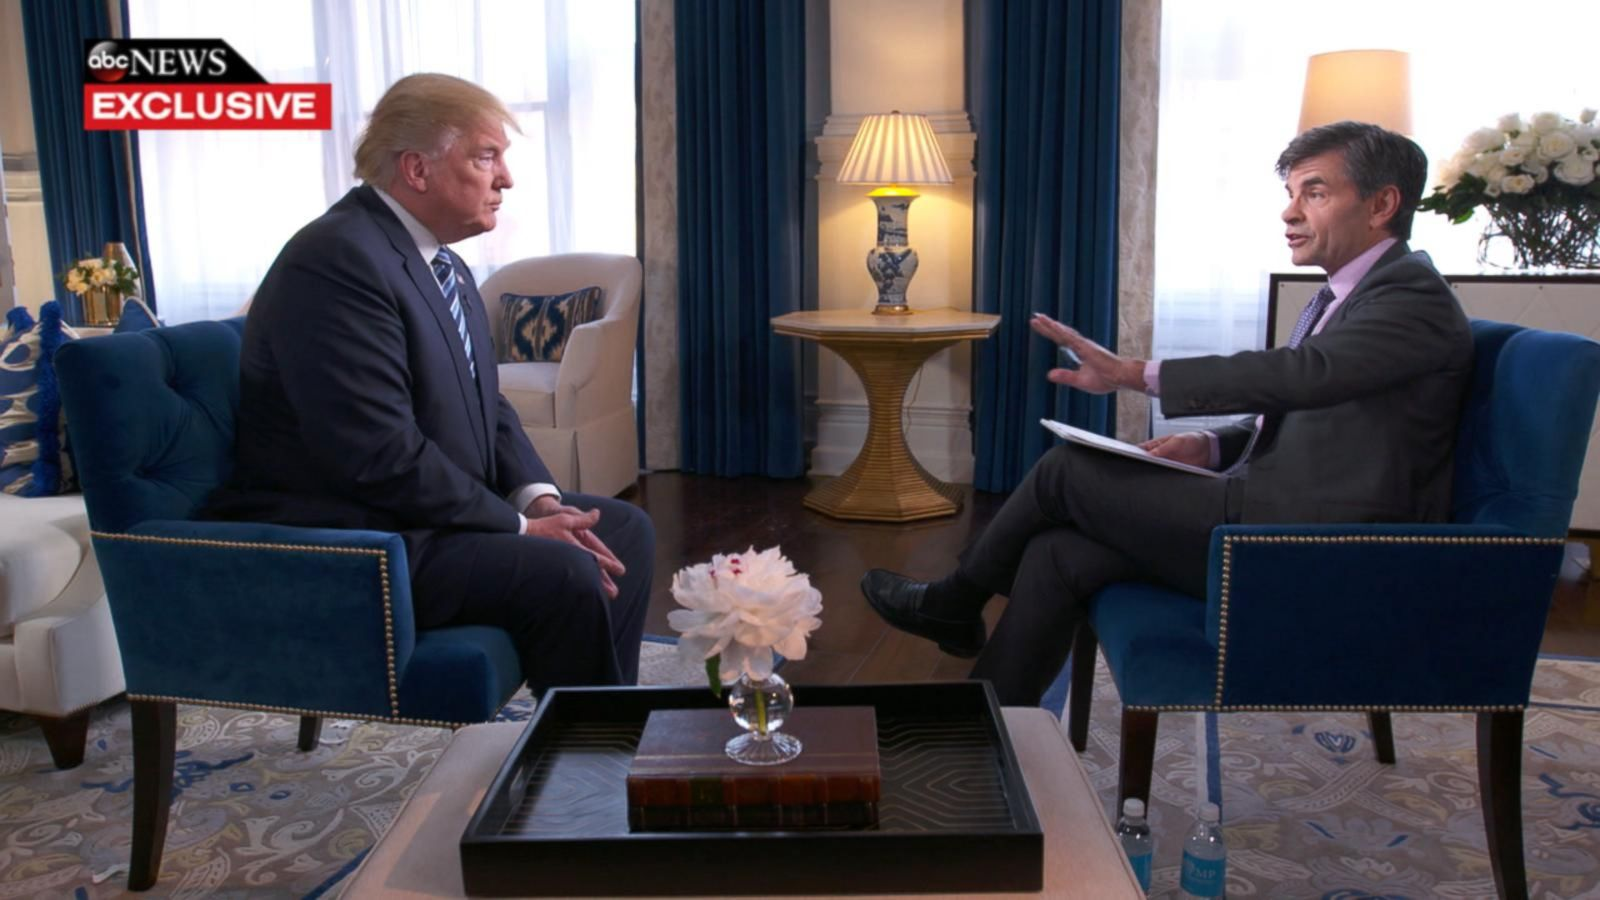 VIDEO: Trump Slams Clinton for Taking Time off for Concert in New Exclusive Interview